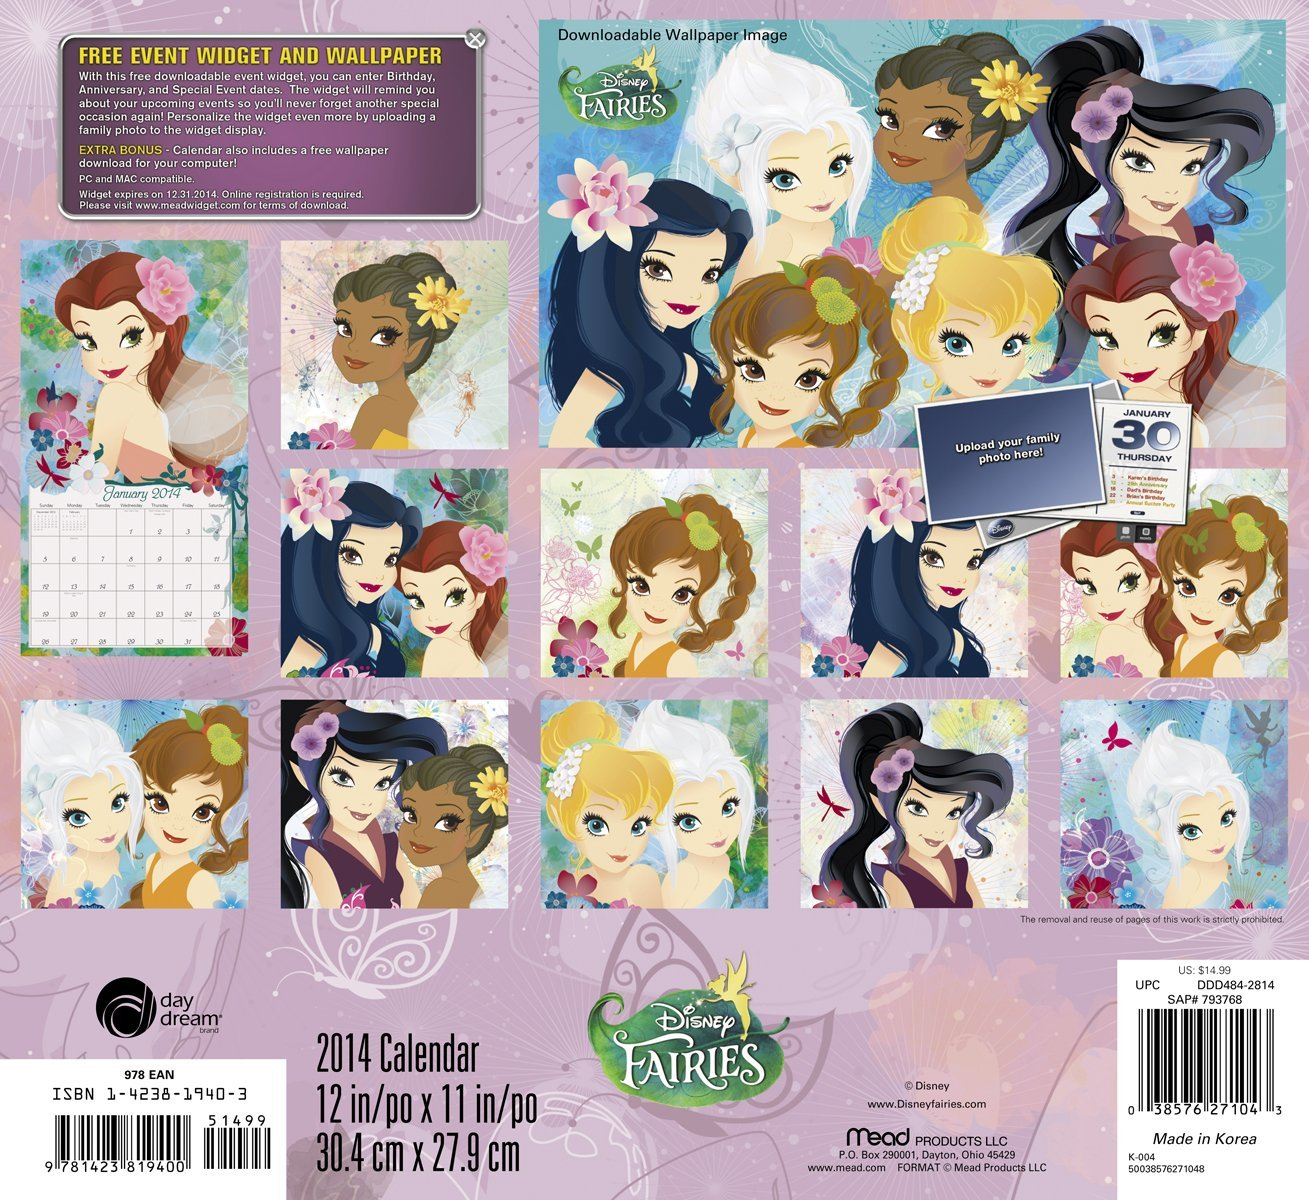 Disney Fairies 2014 Calendar